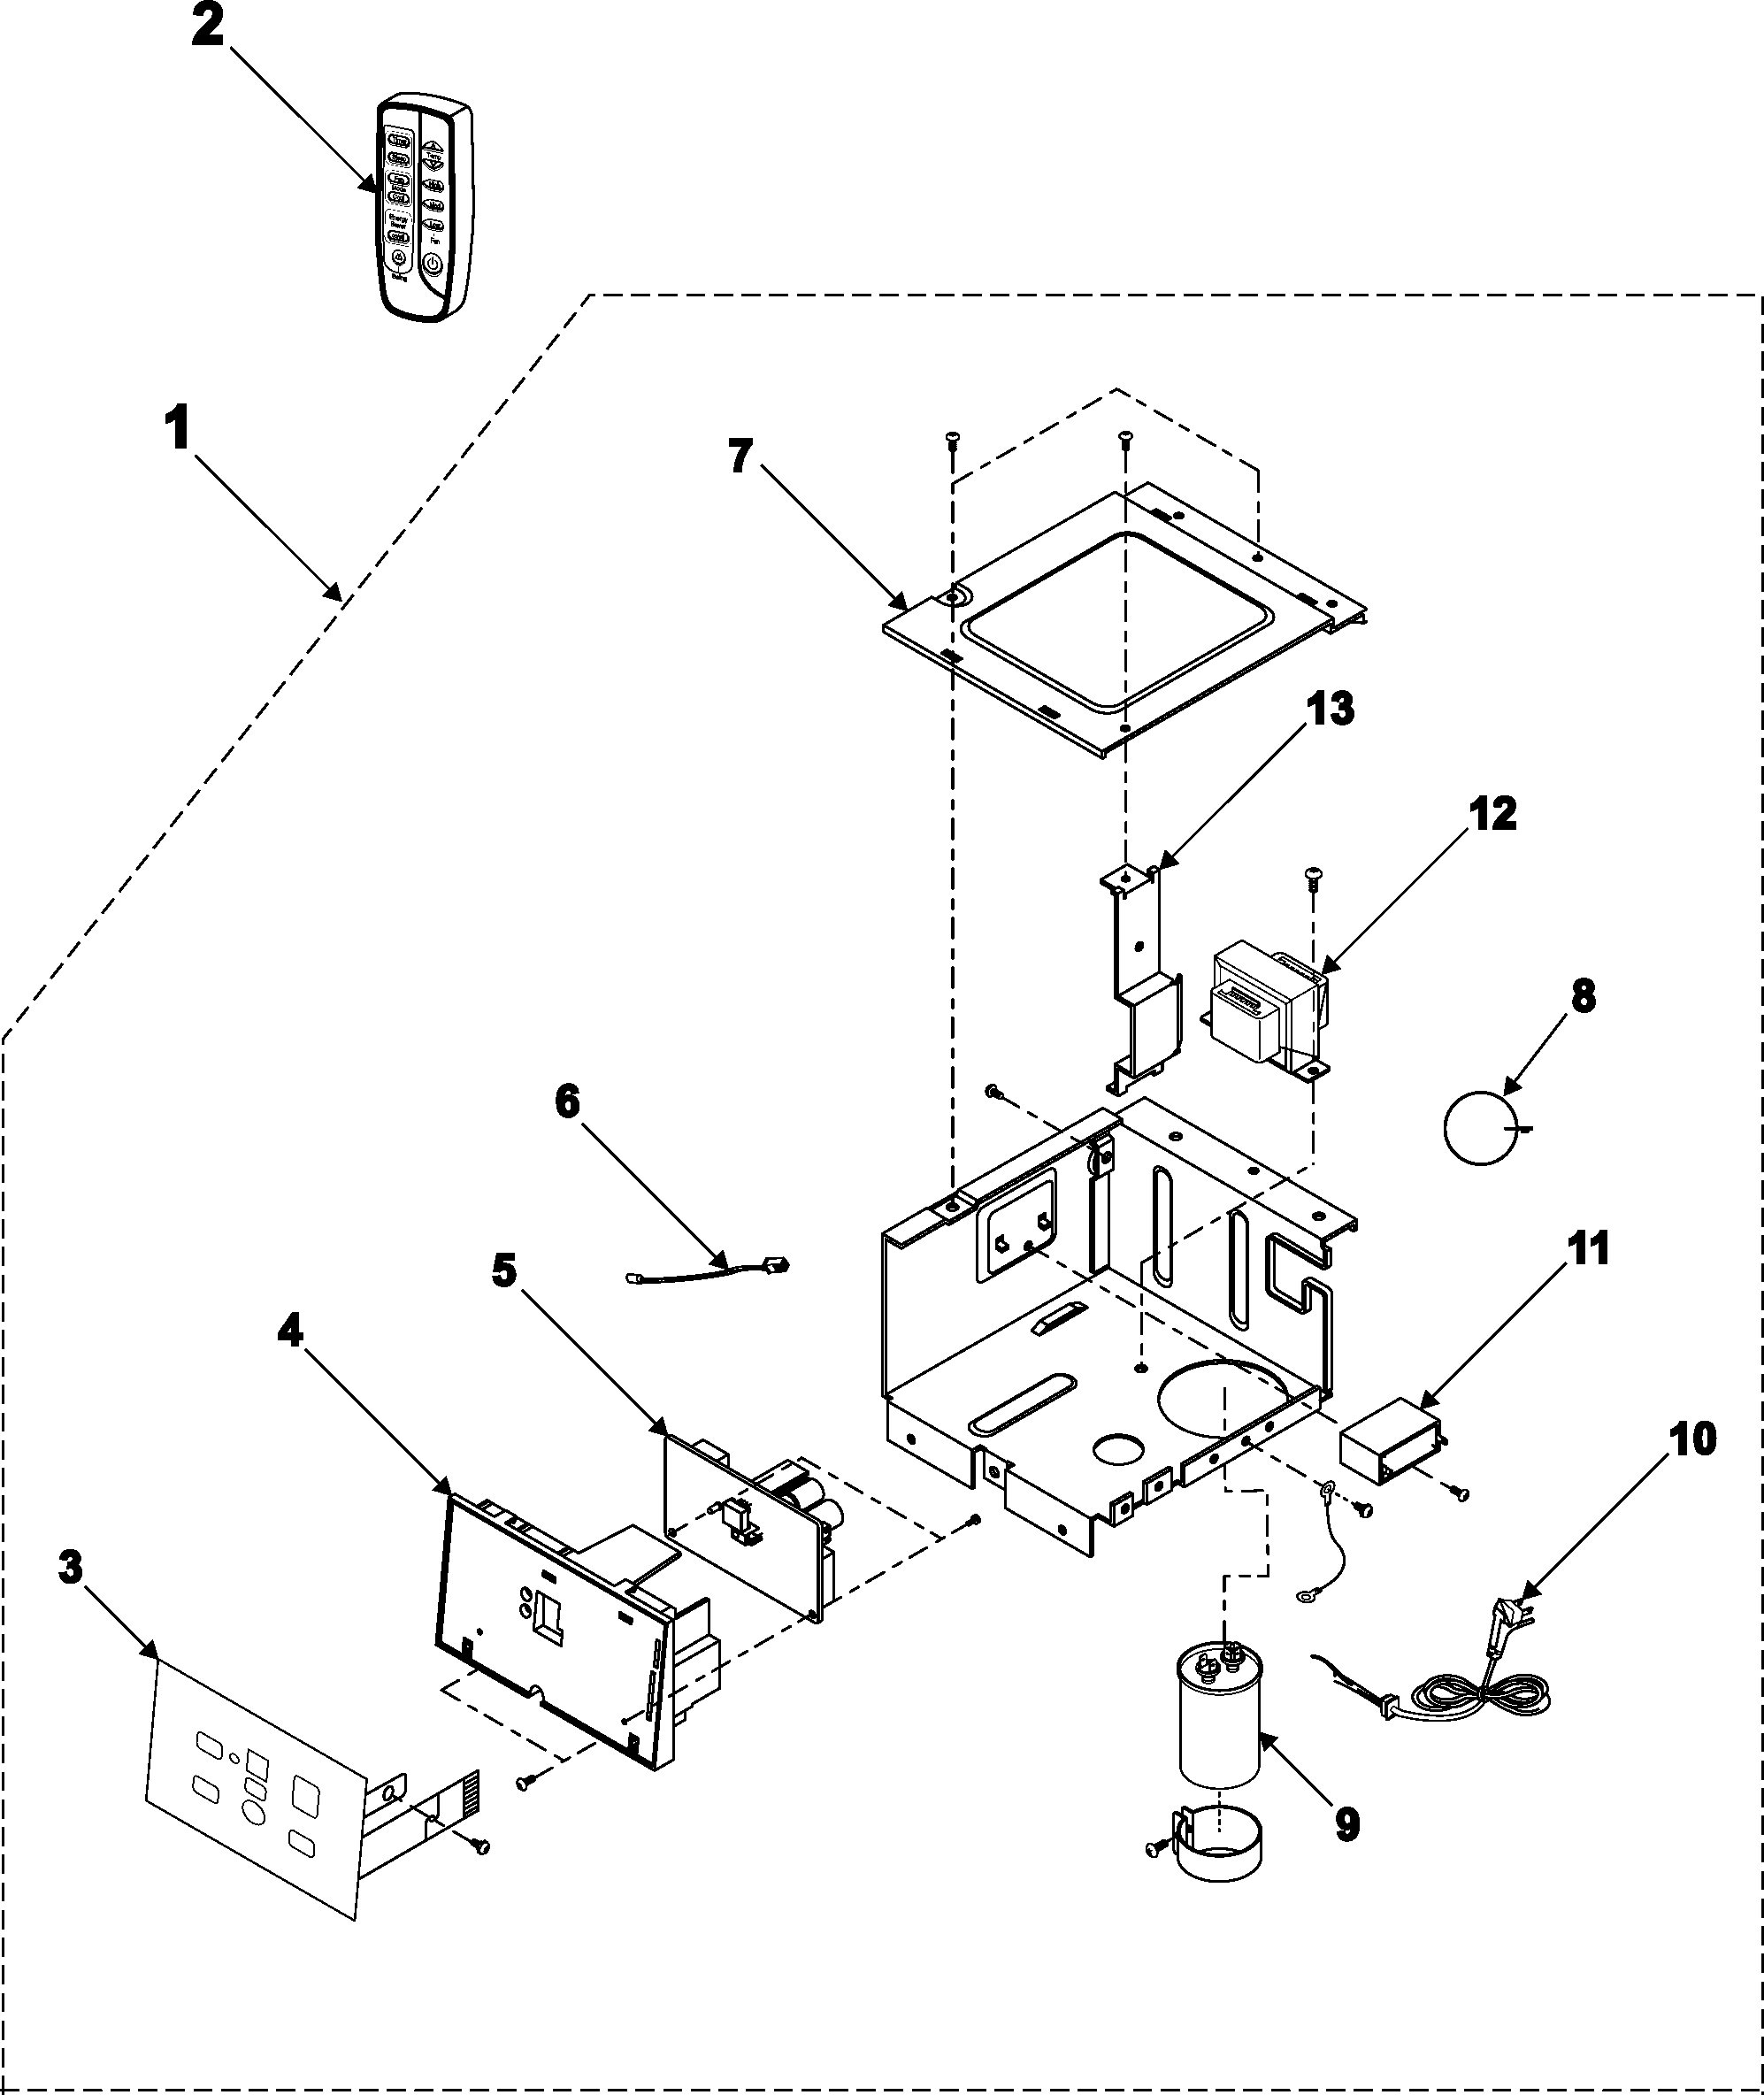 CONTROL ASSEMBLY Diagram & Parts List for Model aw089cb